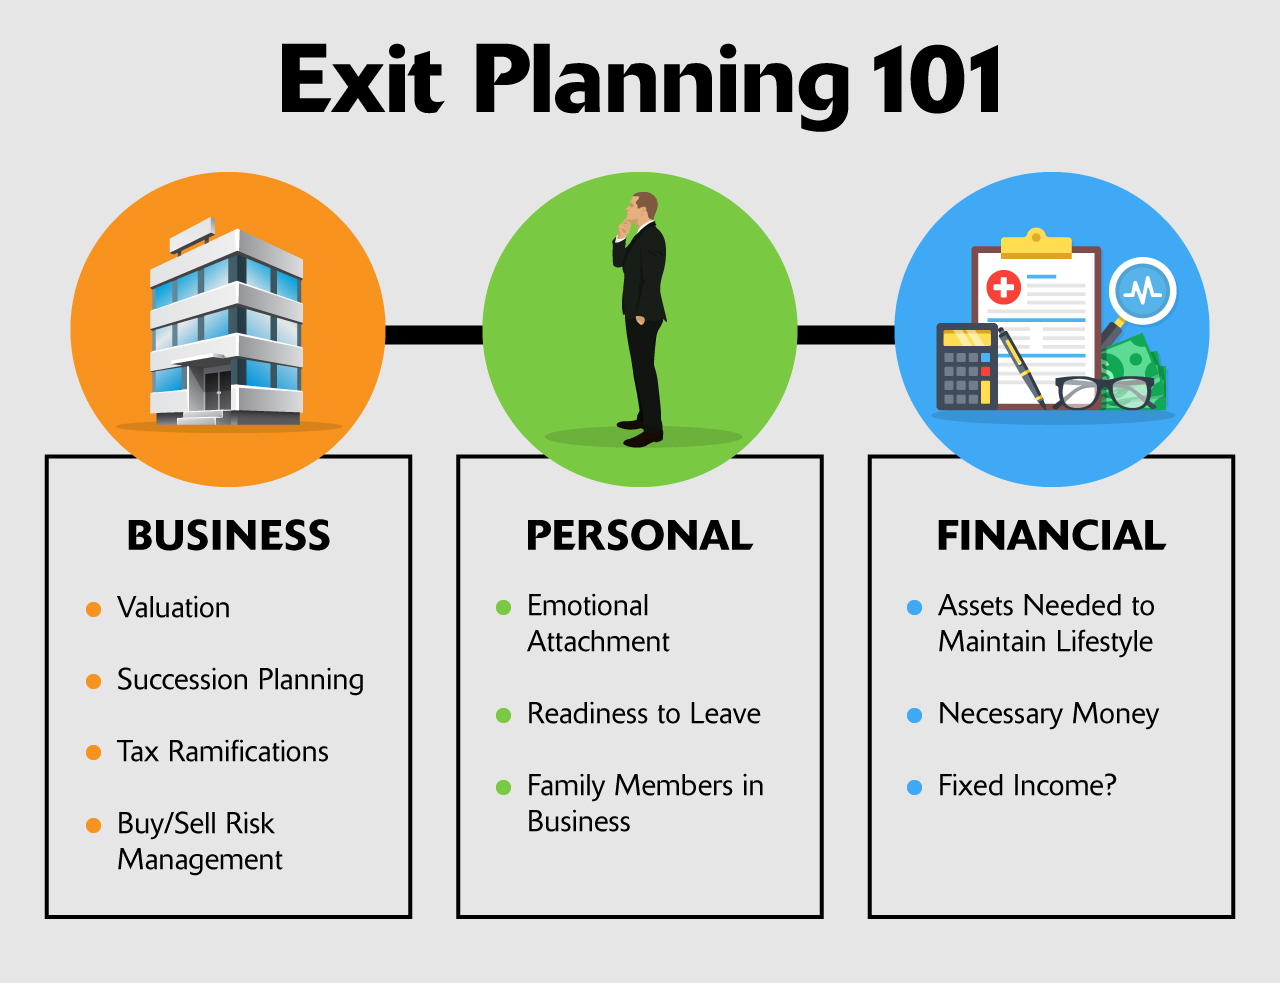 Exit Planning 101